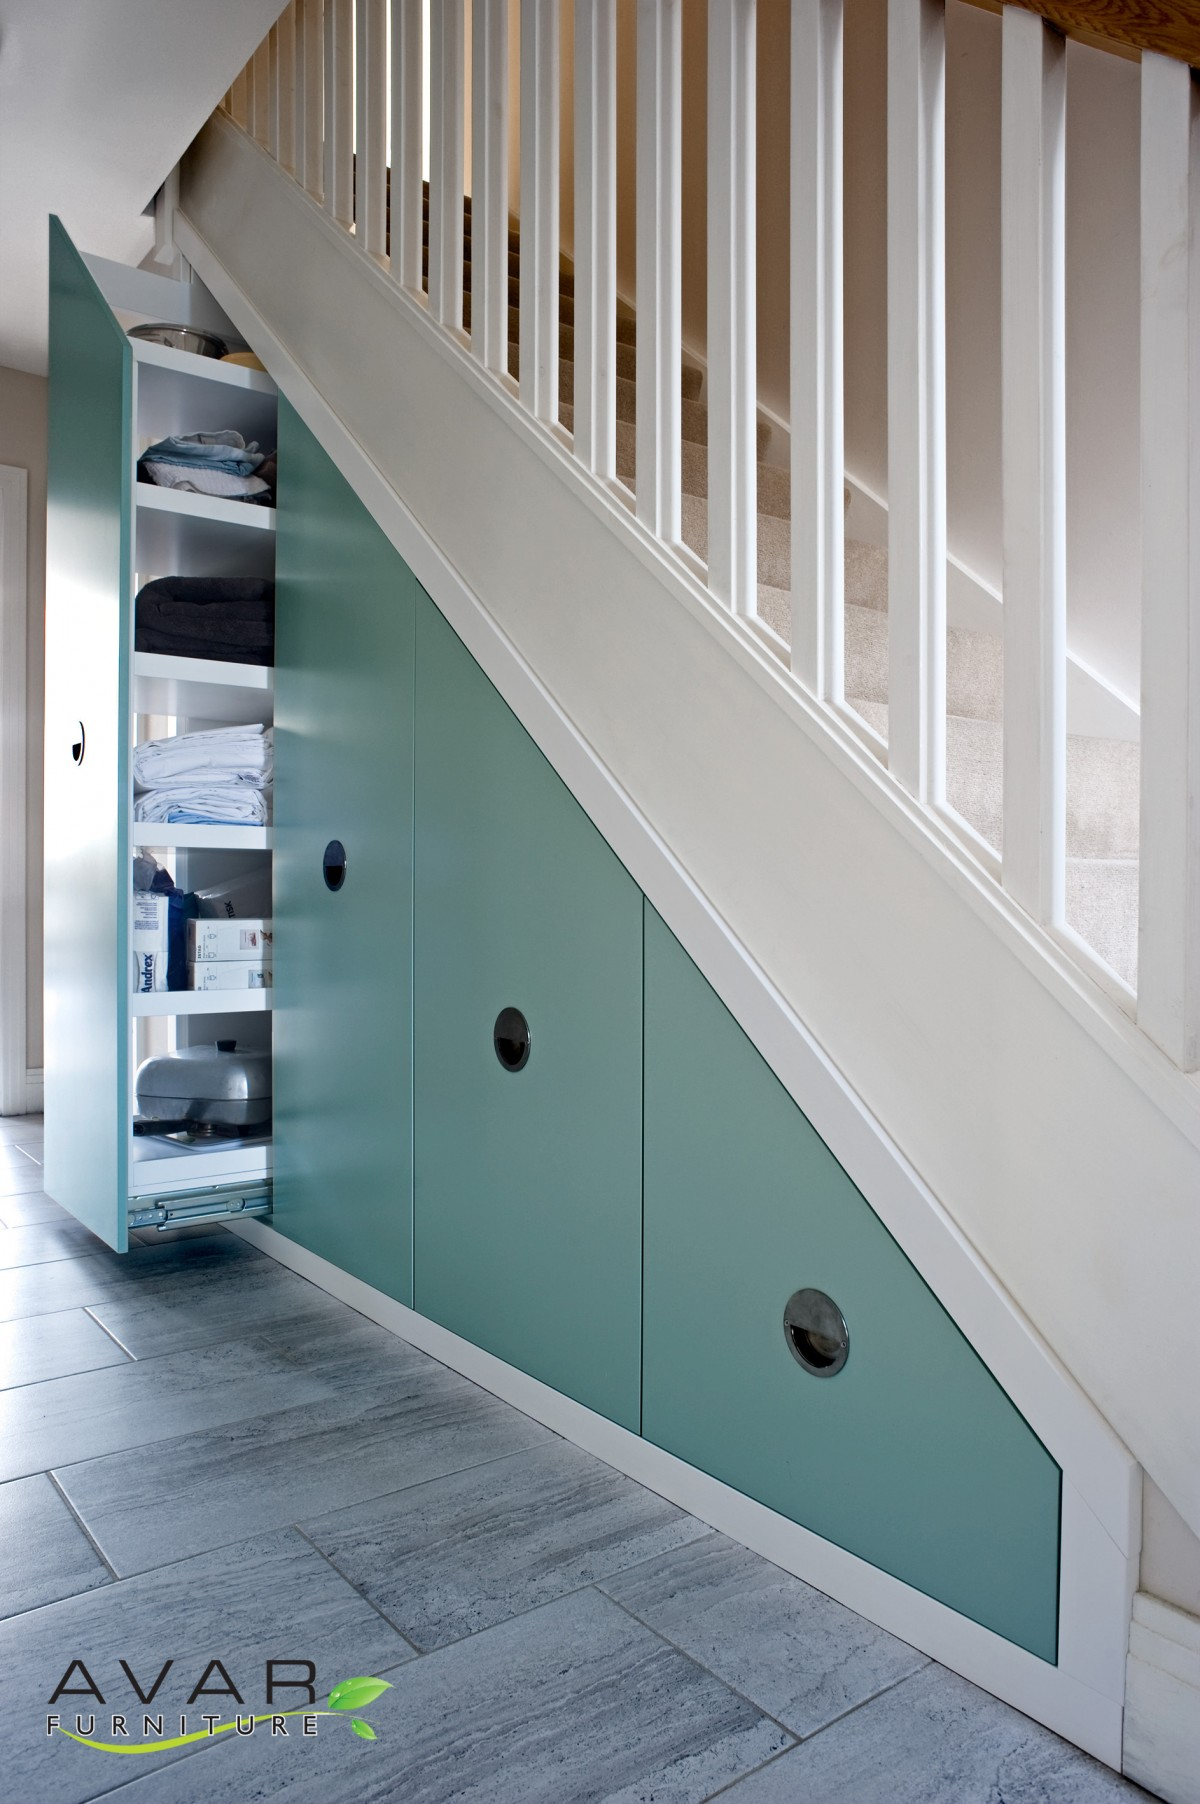 Under stairs storage ideas gallery 19 north london for Understairs storage